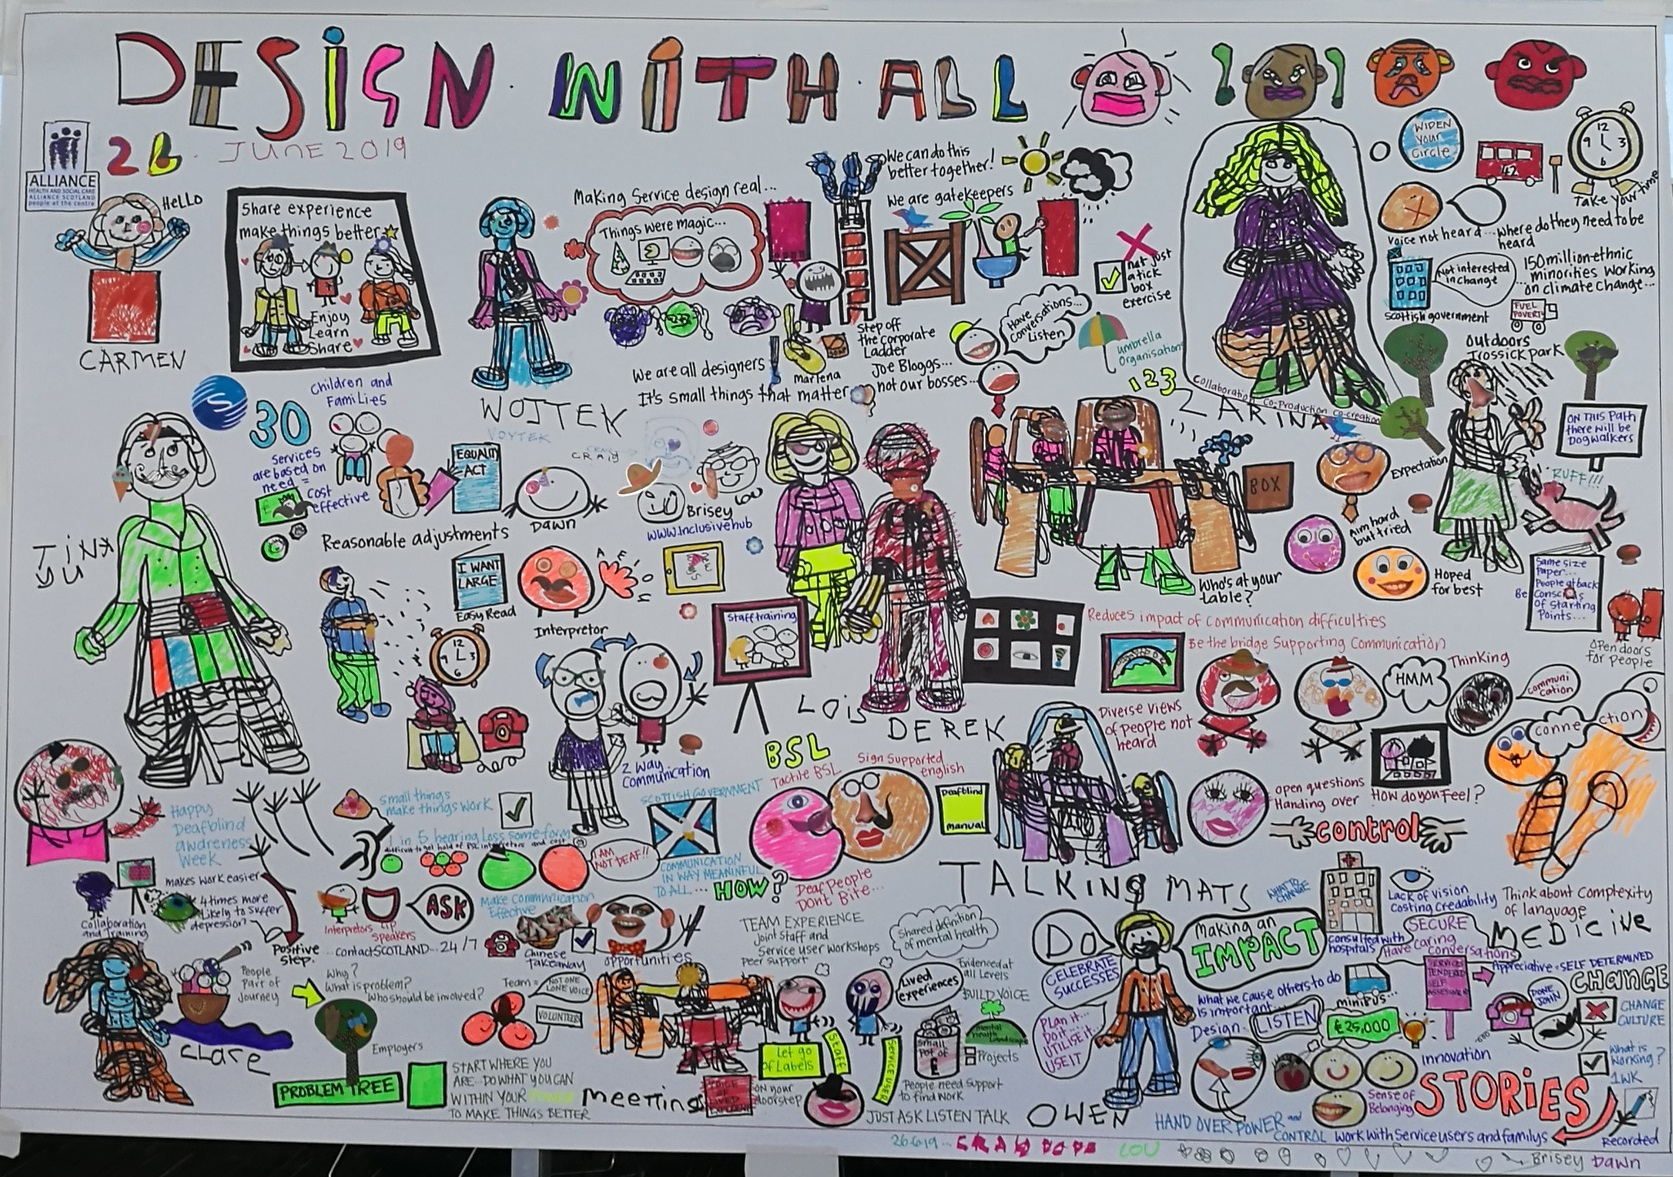 Very complex graphic facilitation of discussion on 26 June, at the 'Design with all' event. Discussion themes can be accessed in report instead.